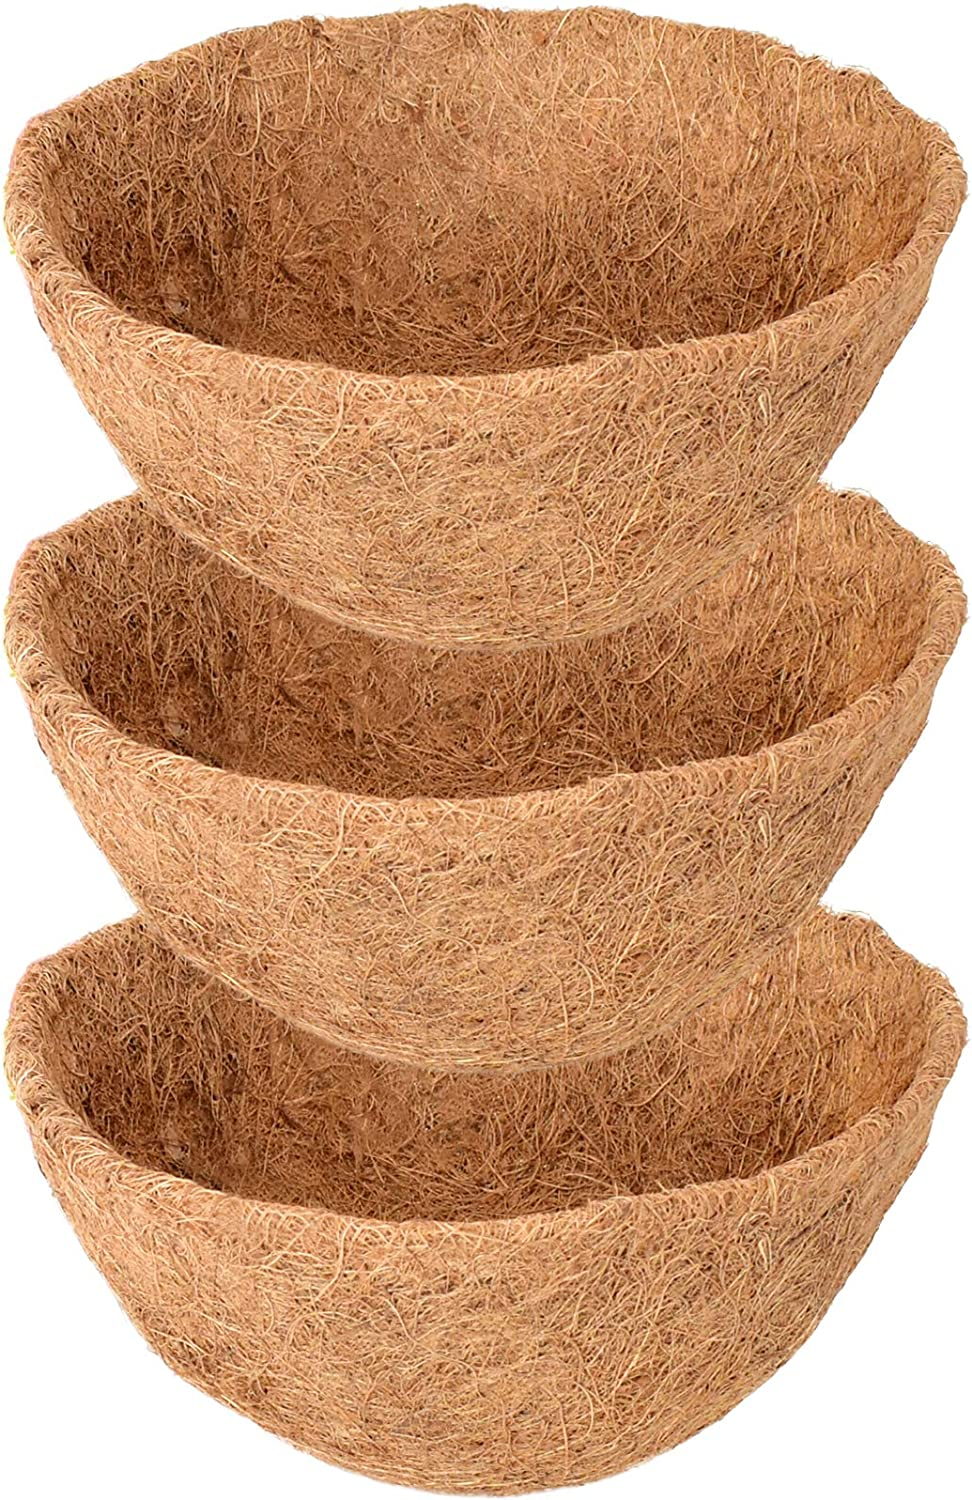 ZeeDix lowest price 3 Pack 14 Inch Hanging 10 Replacement Coco Liners Basket Special price